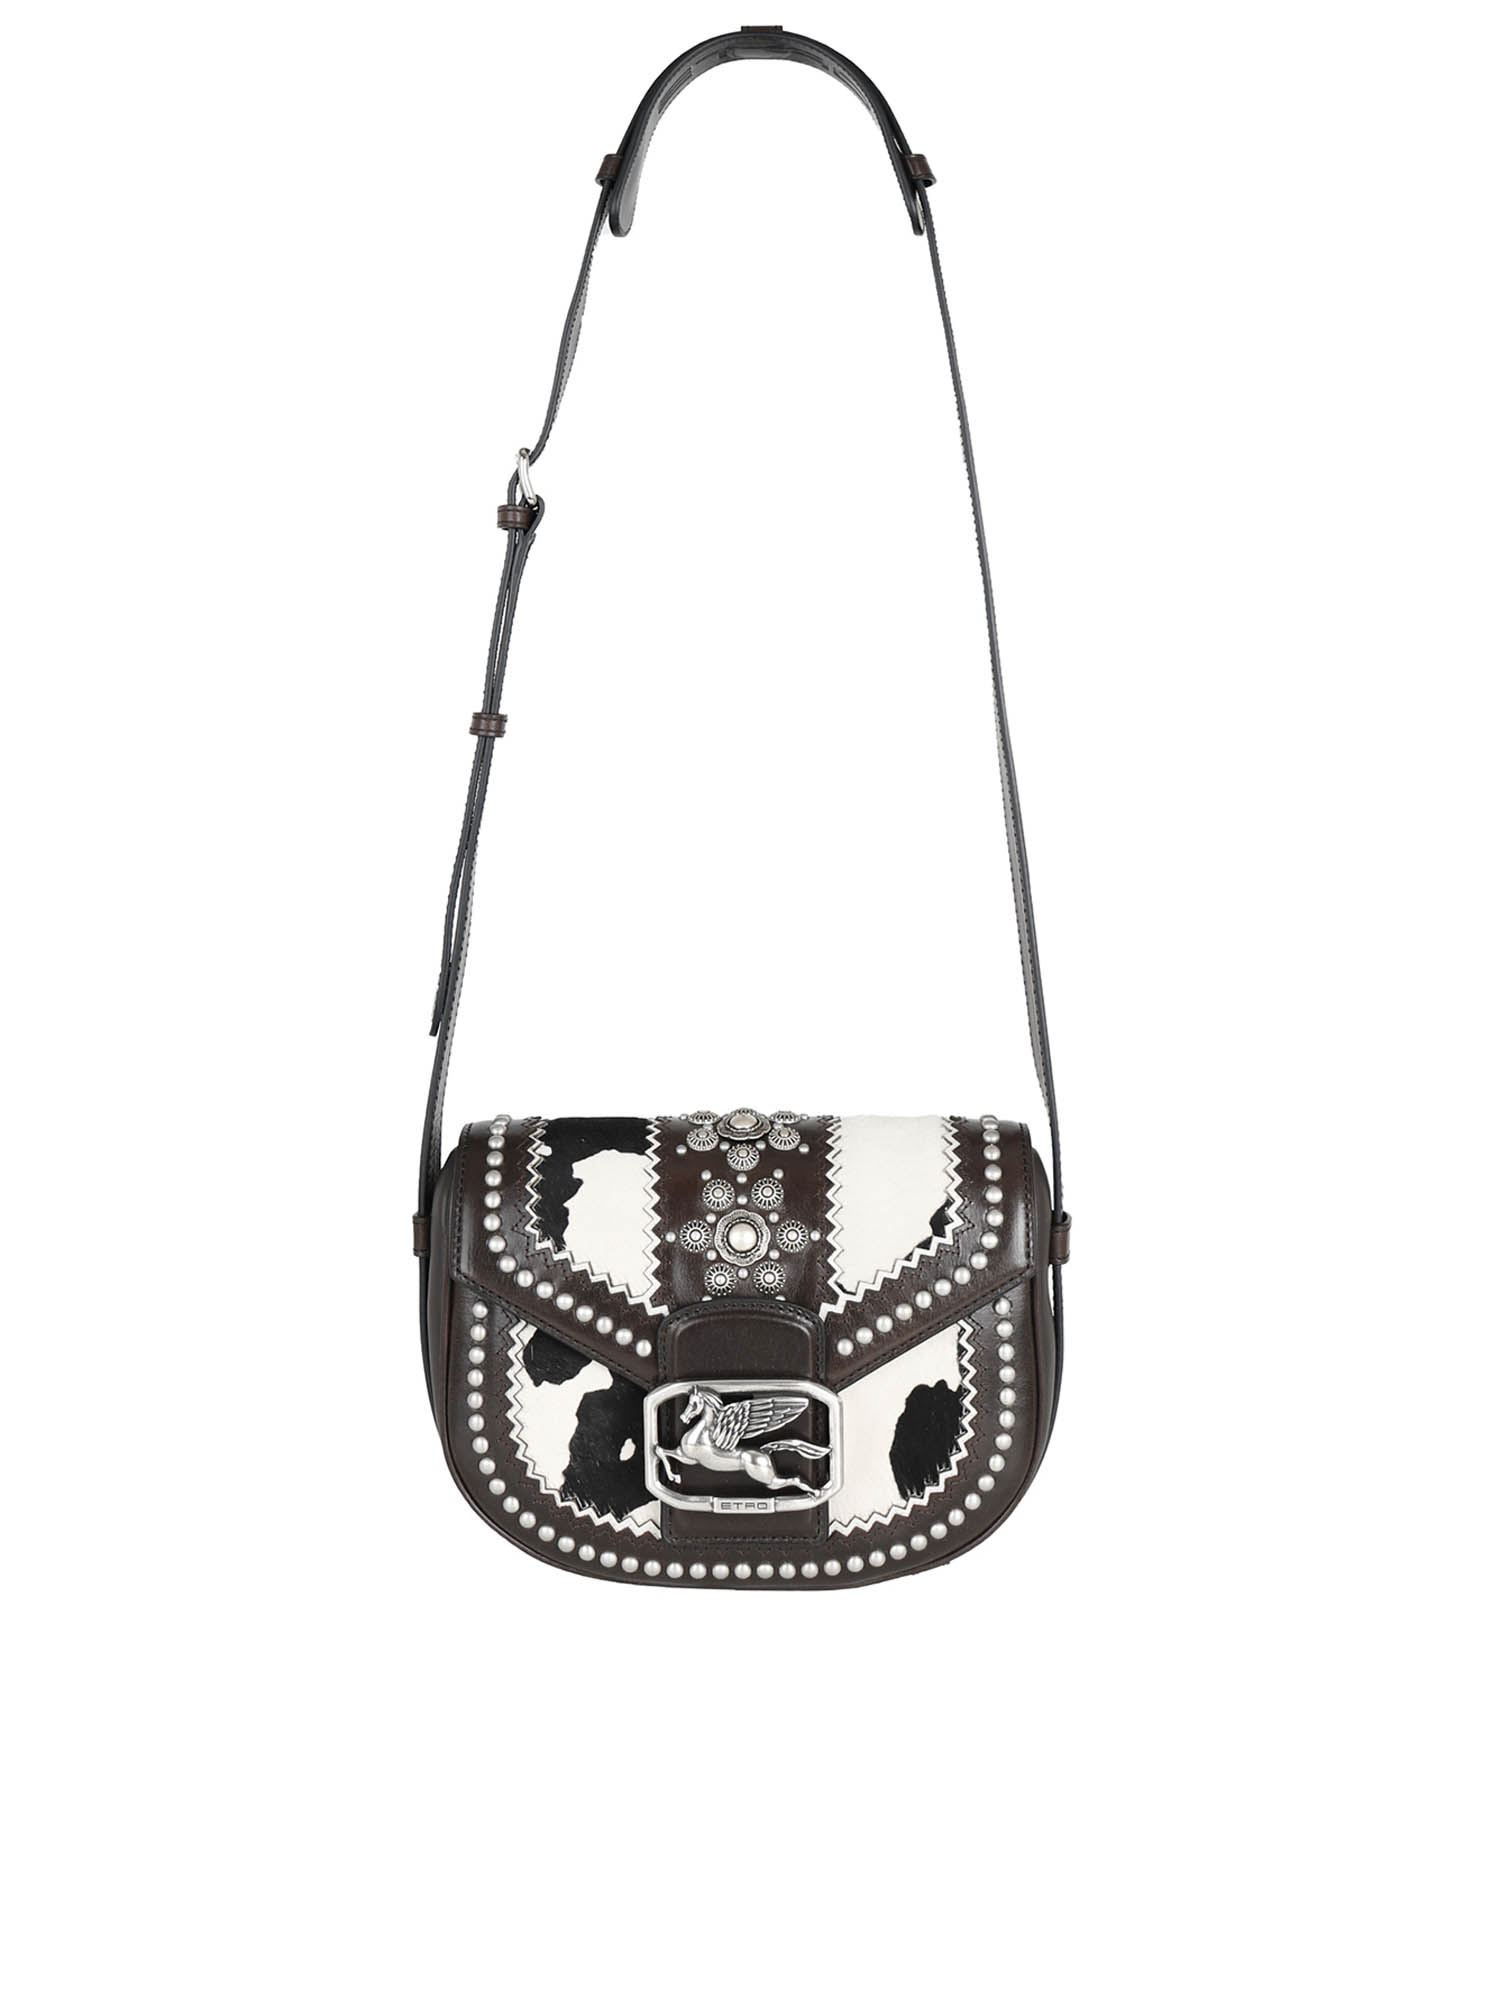 Etro PEGASO STUDS BAG IN BROWN